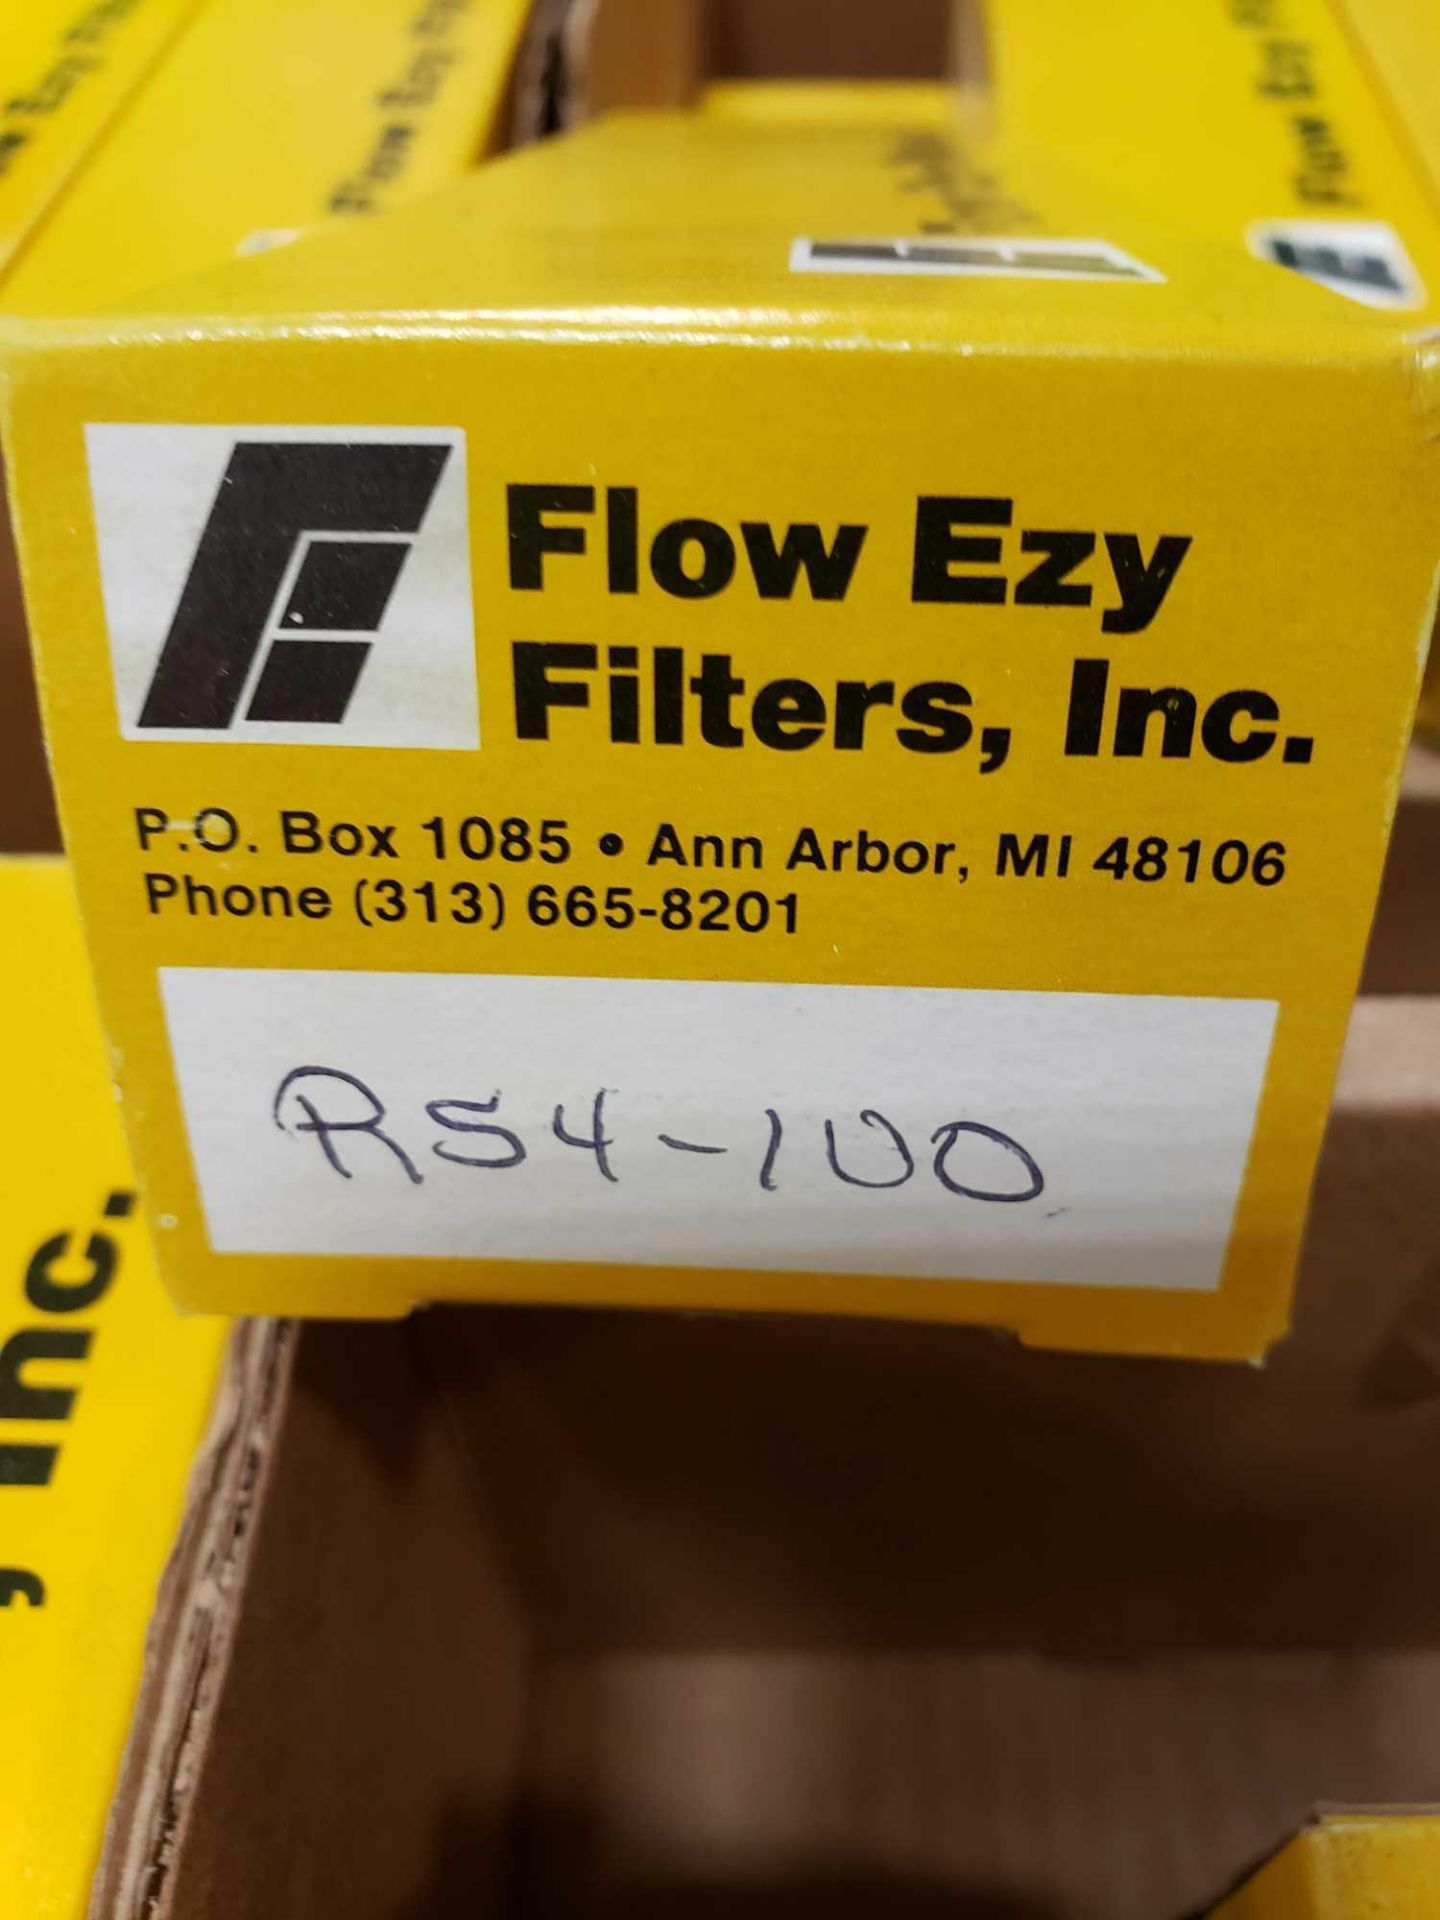 Lot 45 - Qty 10 - Flow Ezy Filters model R54-100 tank mounted strainer. New in box.